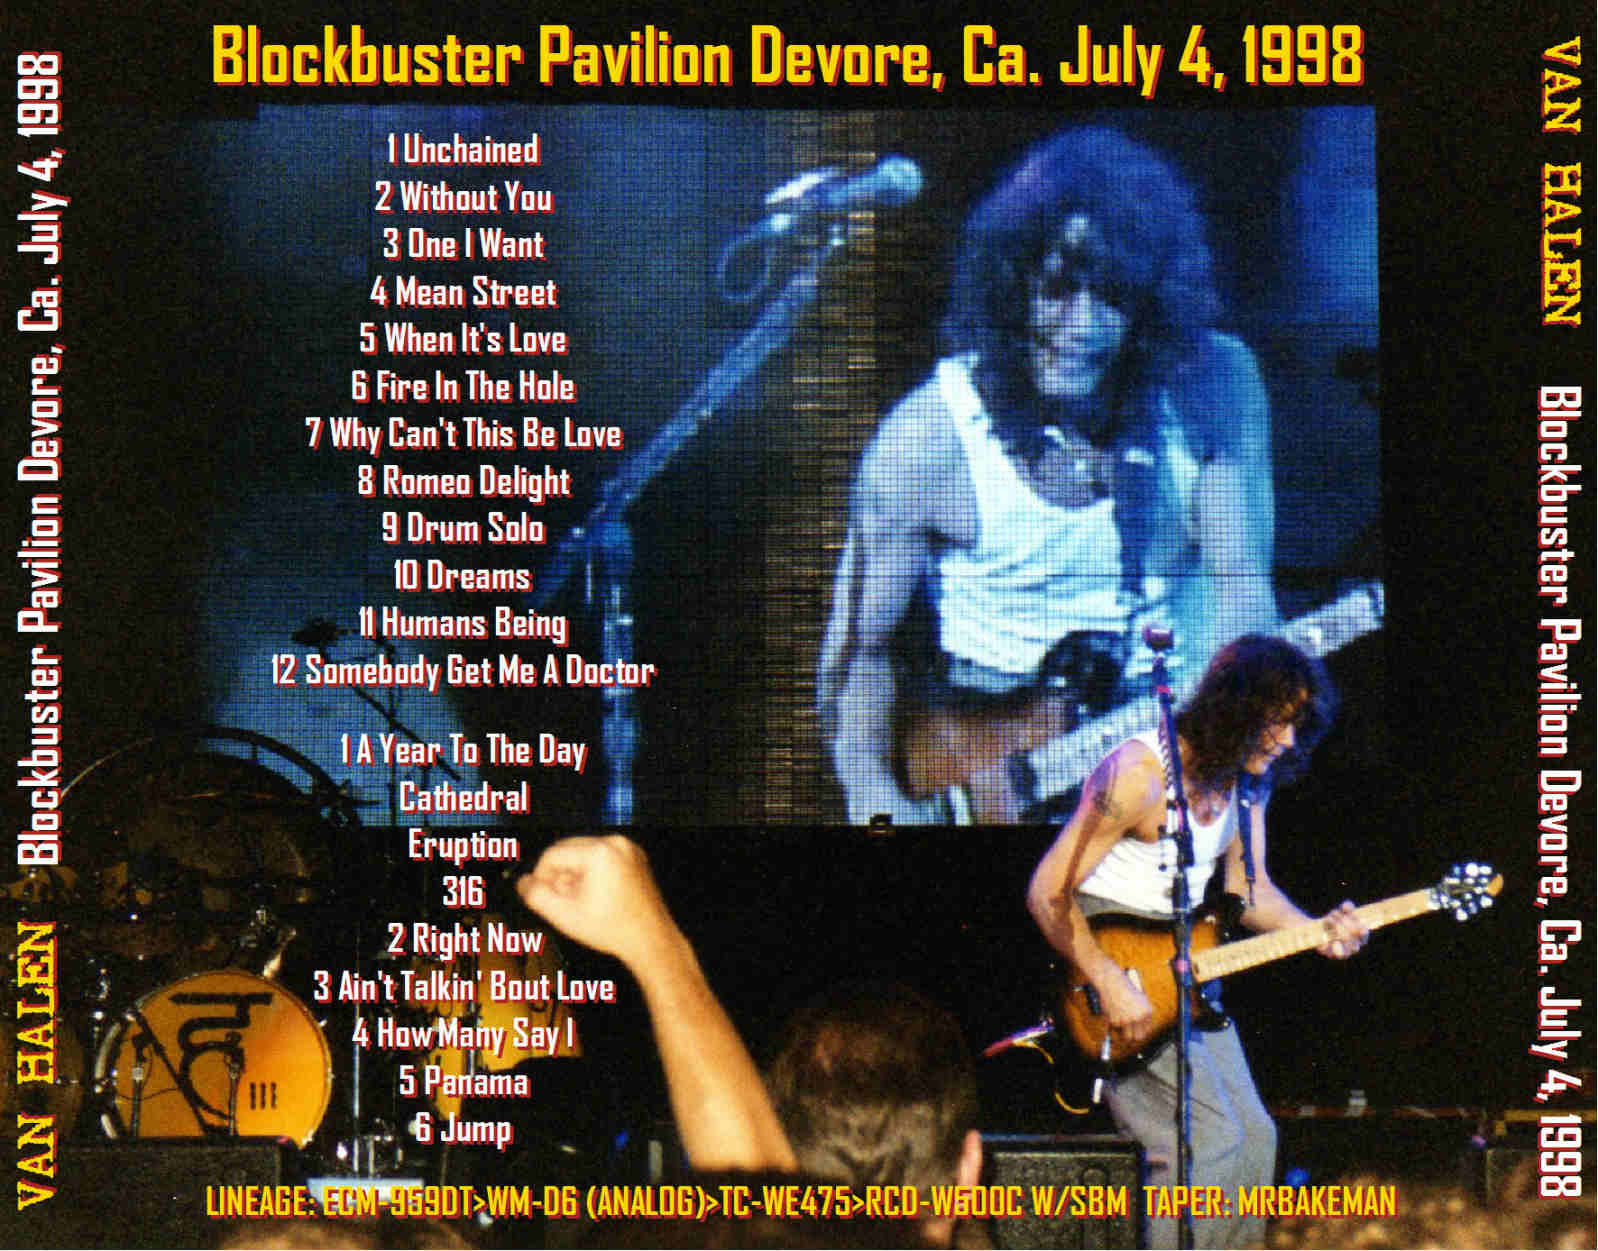 Viva Les Bootlegs Van Halen Devore 1998 Blockbuster Pavilion Devore Ca Usa 1998 07 04 Double Cd Lossless Flac